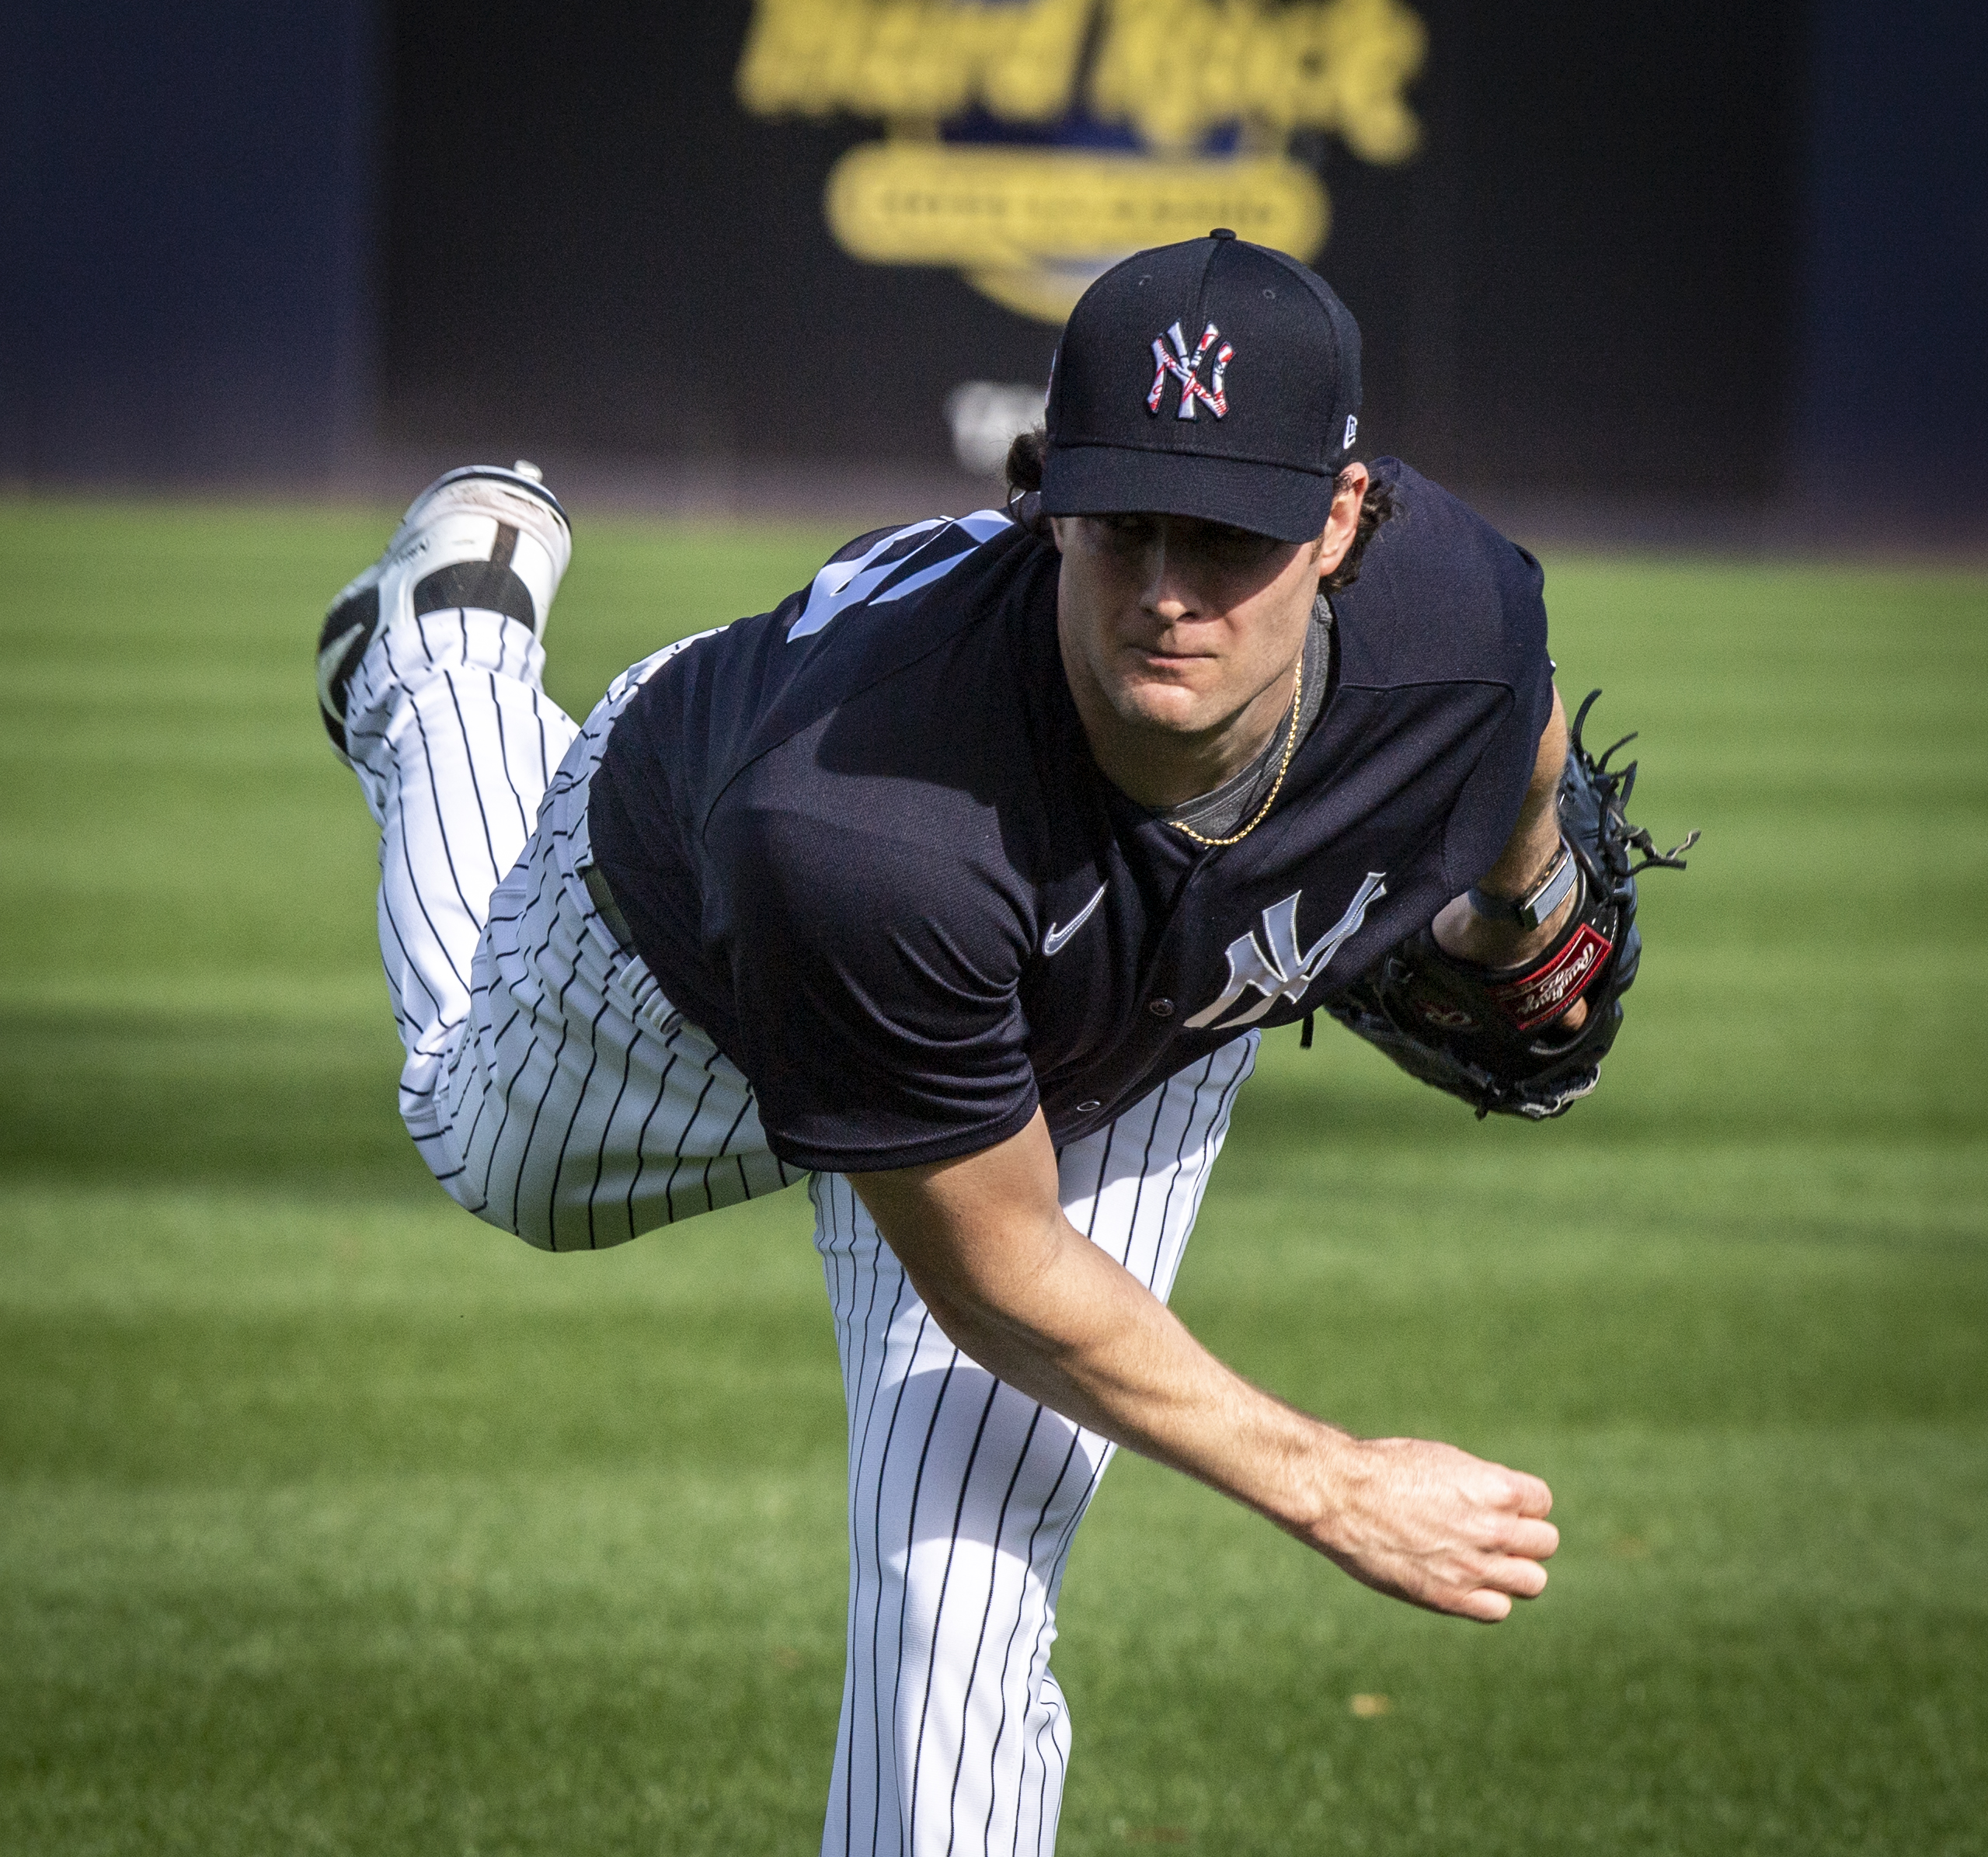 New York Yankees pitcher Gerrit Cole warms up at spring training 2020